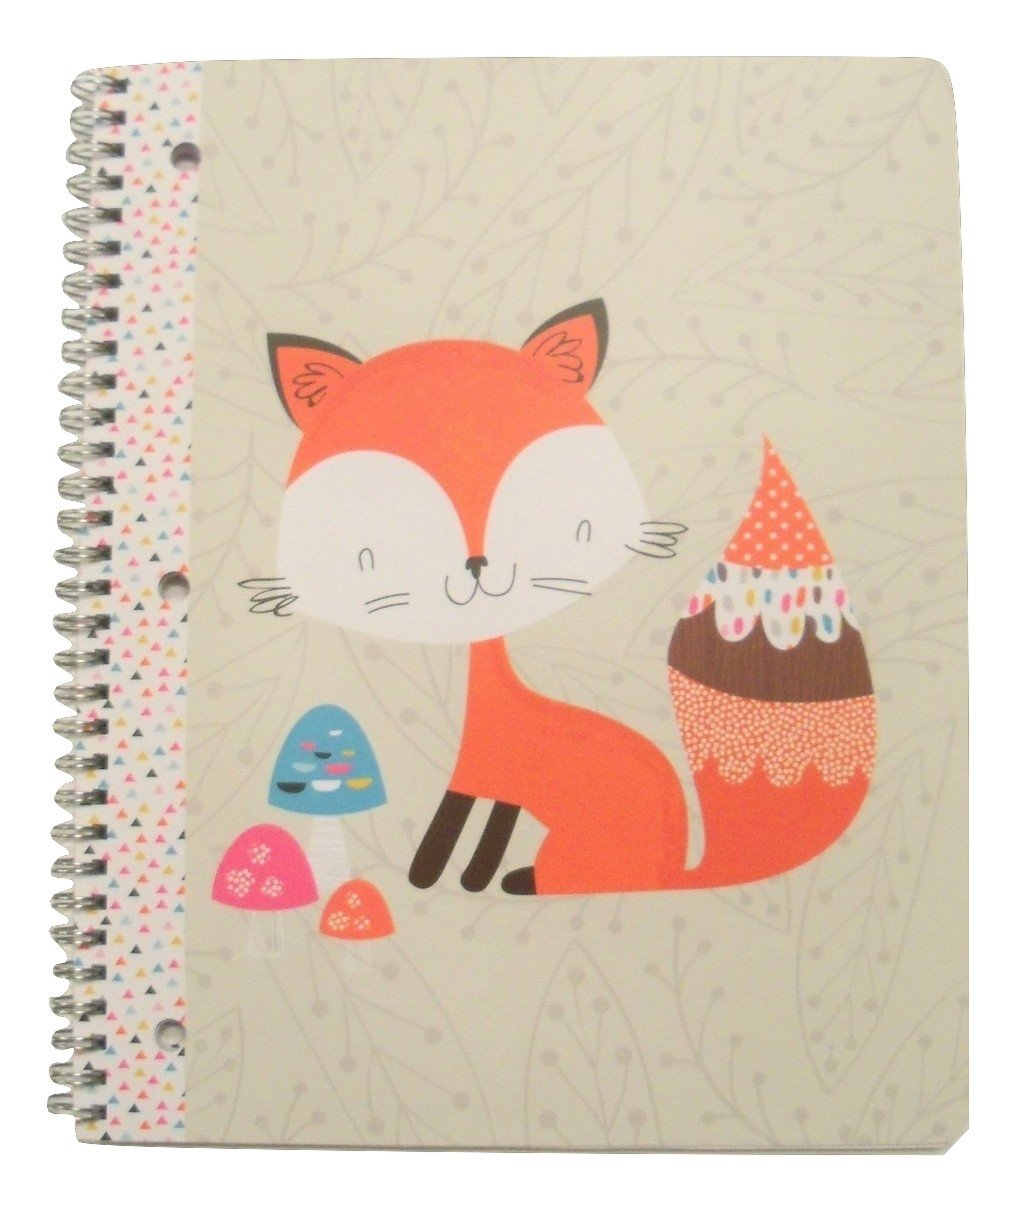 Carolina Pad Studio C Wide Ruled Spiral Notebook ~ Forest Friends (Red Fox with Decorative Mushrooms; 8.5'' x 10.5''; 80 Sheets, 160 Pages)